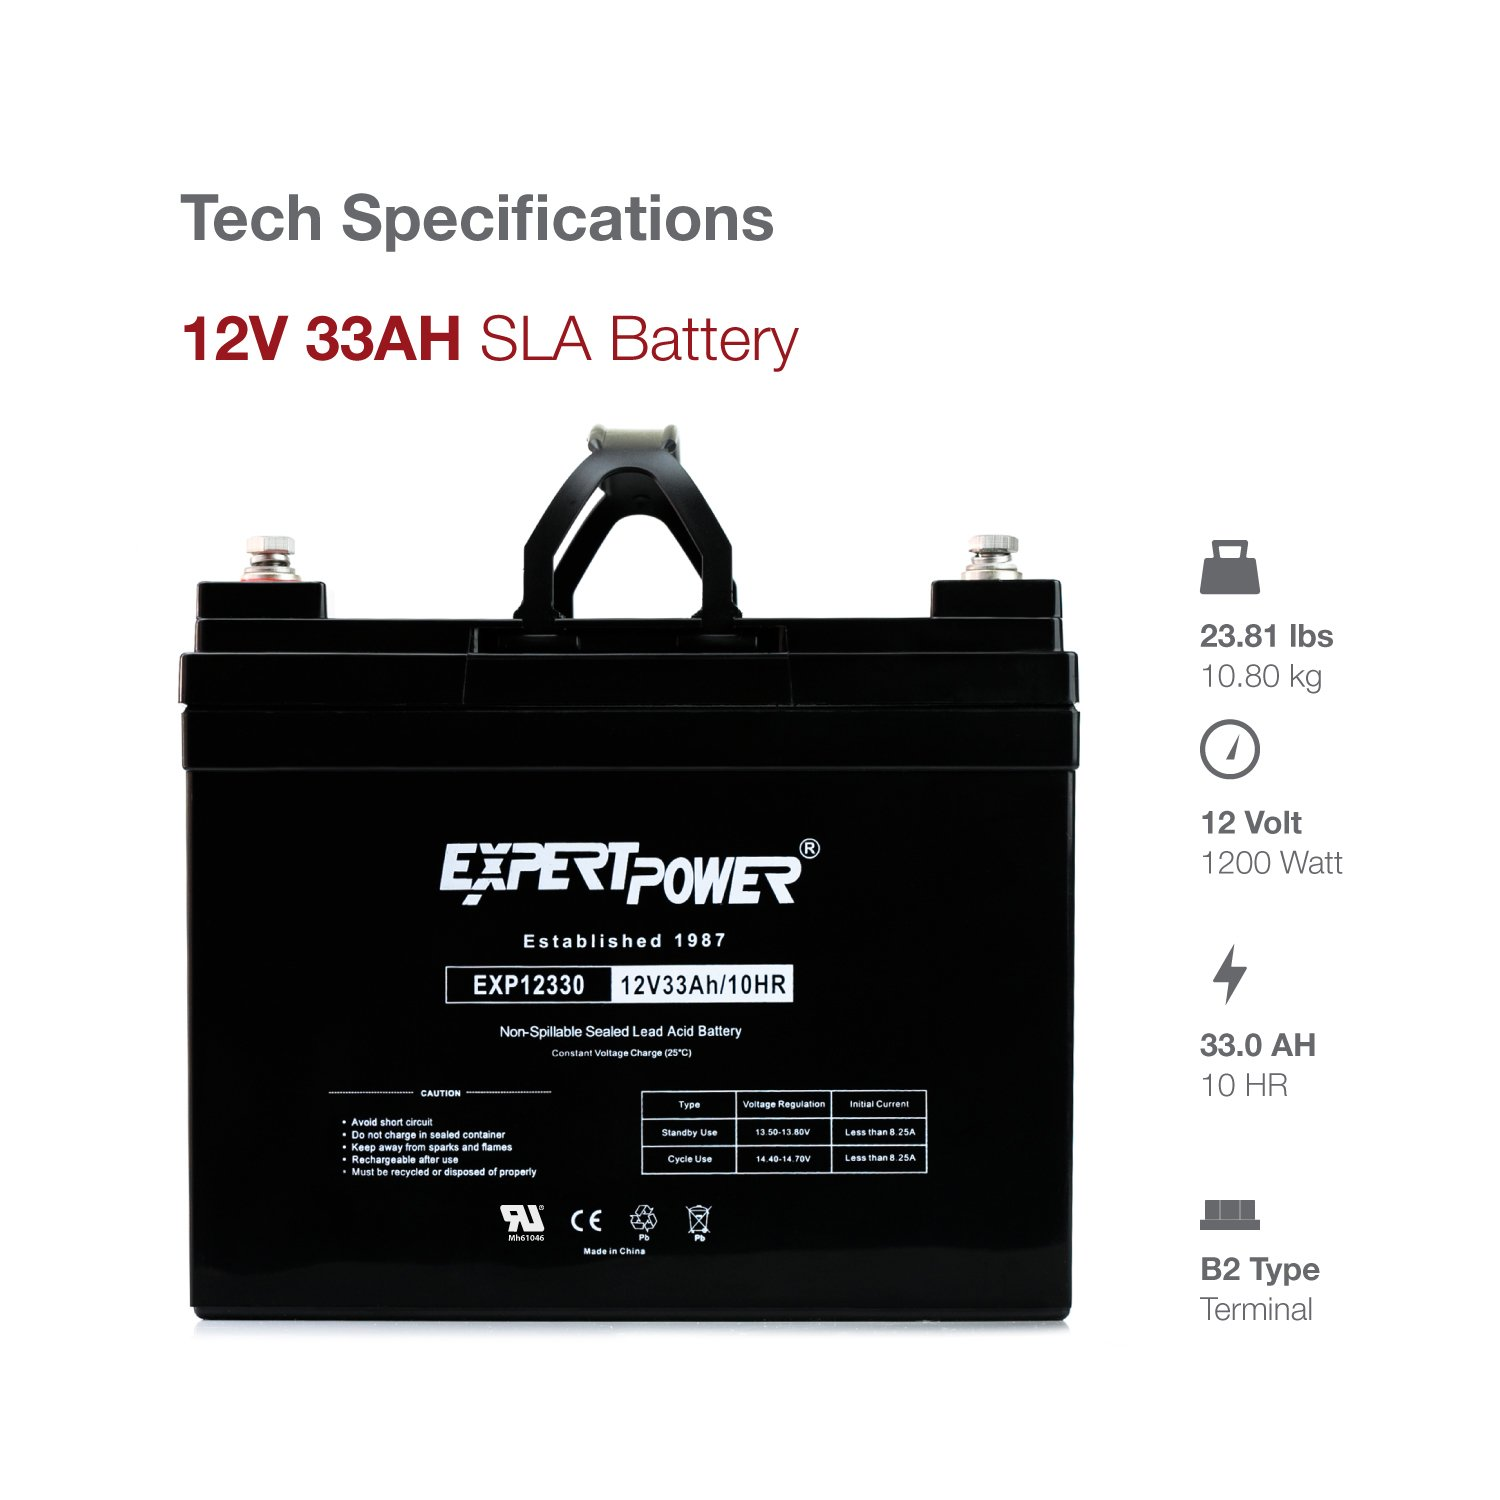 Expertpower 12v 33ah Rechargeable Deep Cycle Battery Charging Circuit Related Keywords Suggestions Exp12330 Replaces 34ah 35ah 36ah Automotive